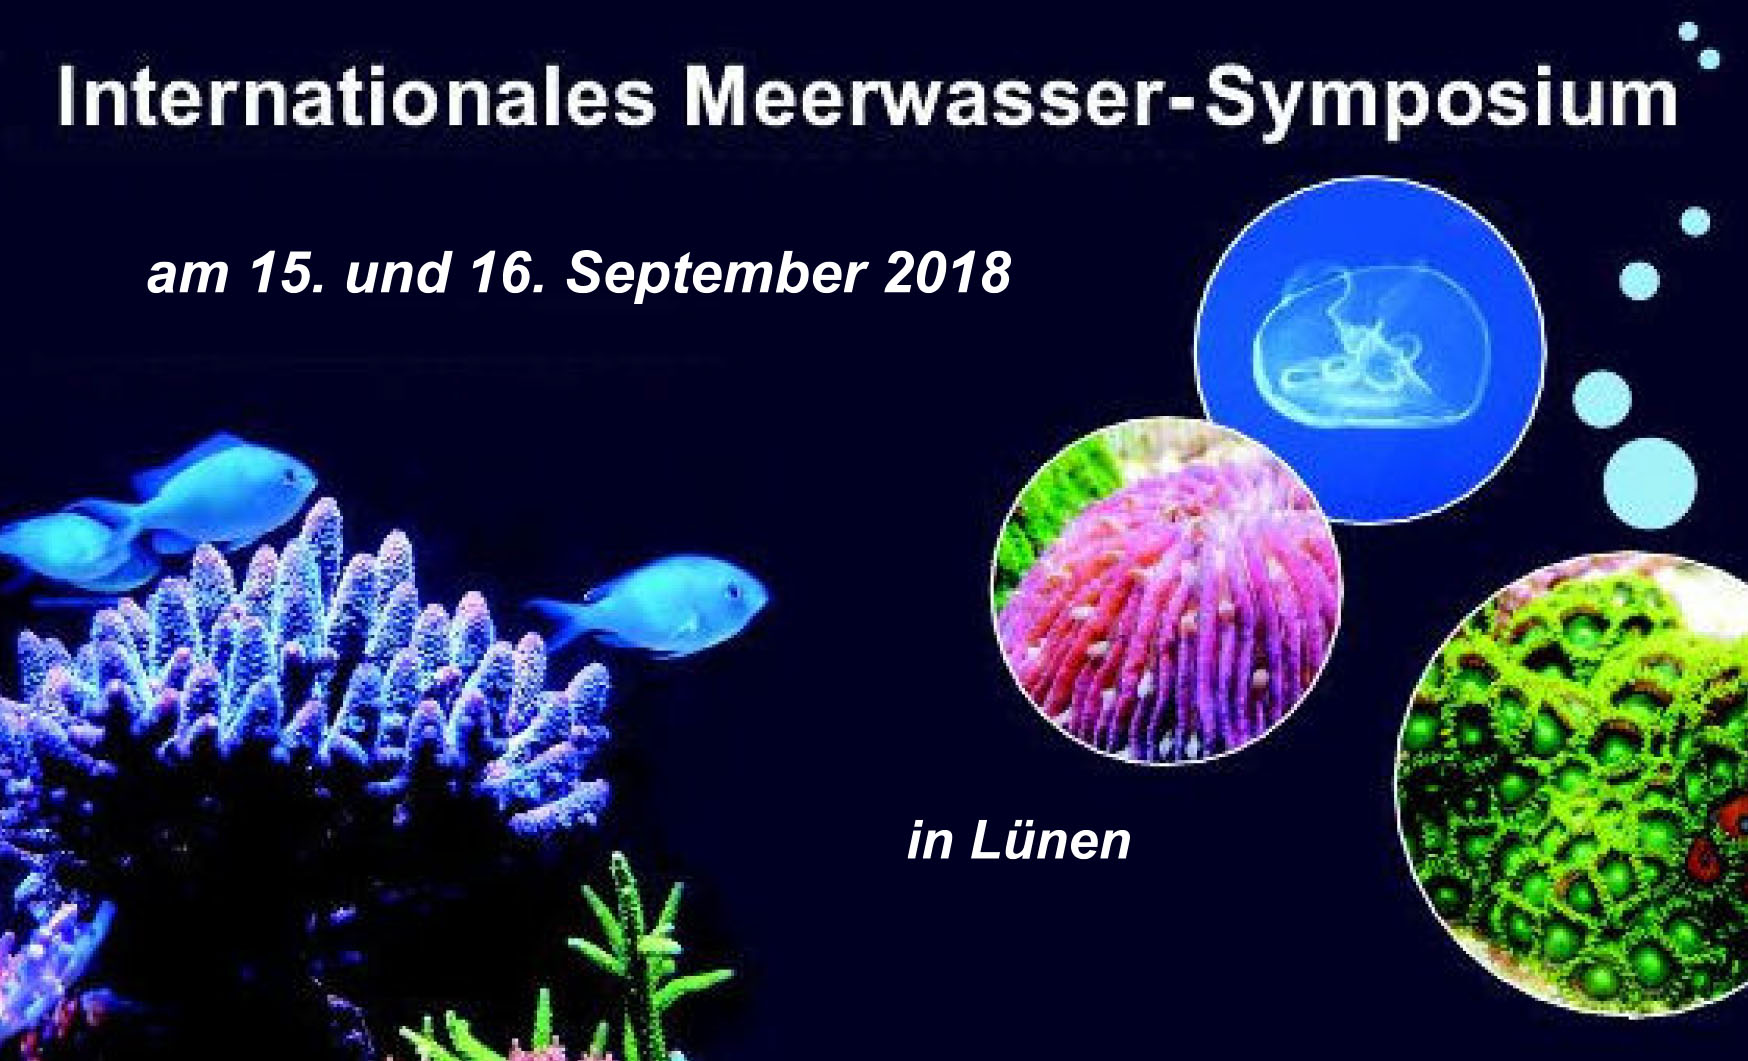 Internationales Meerwassersymposium Lünen